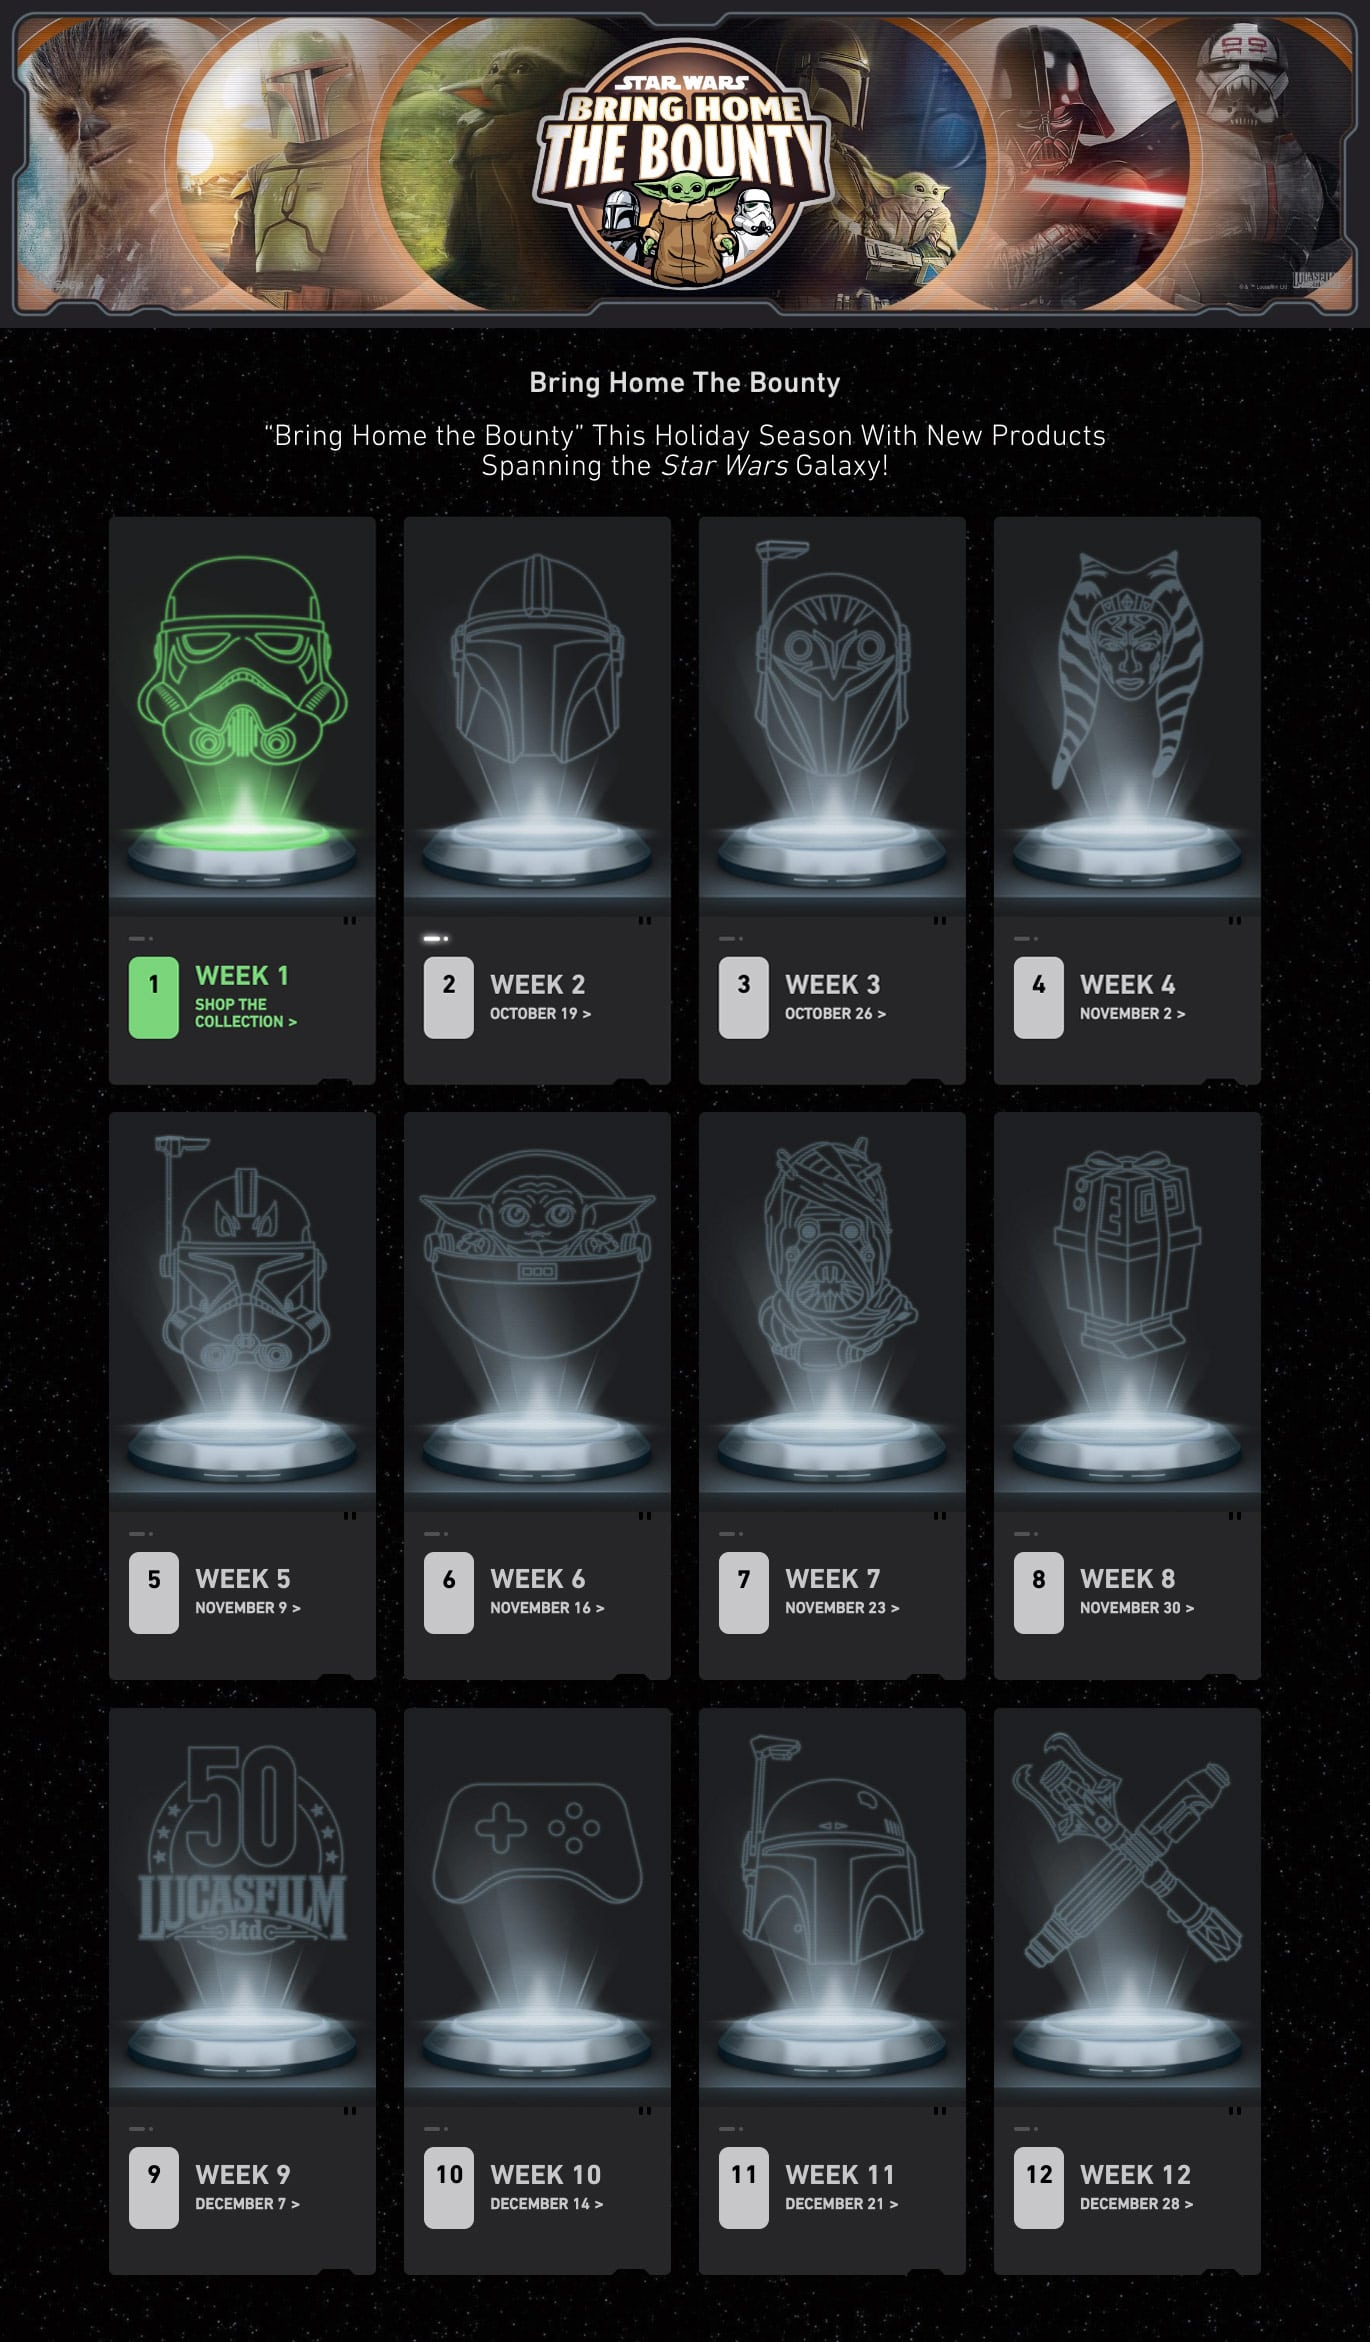 Star Wars Bring Back The Bounty Products